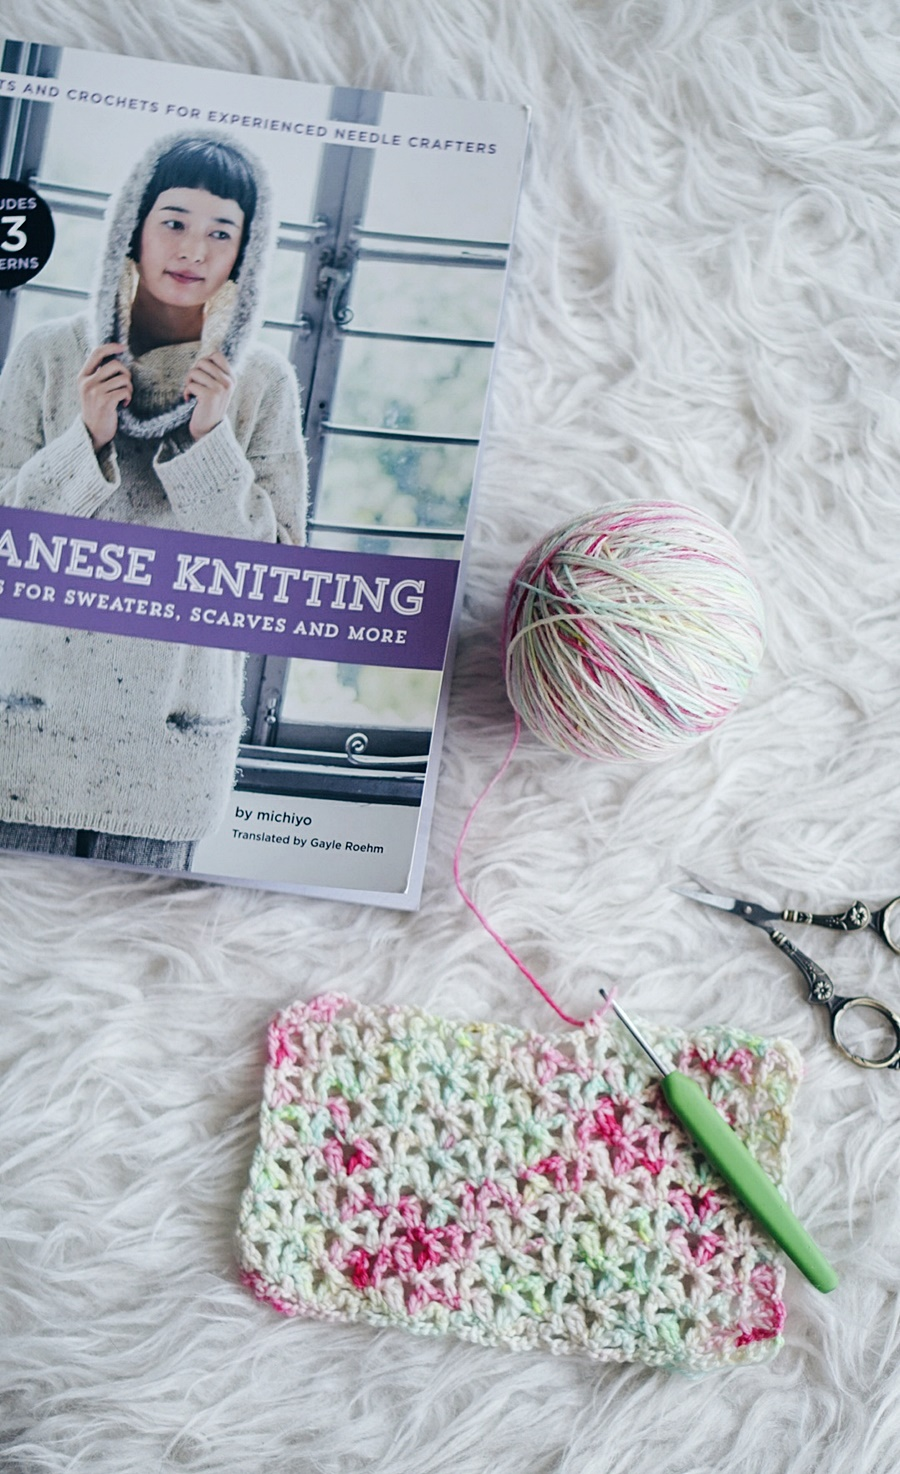 JAPANESE KNITTING: PATTERNS FOR SWEATERS AND MORE REVIEW